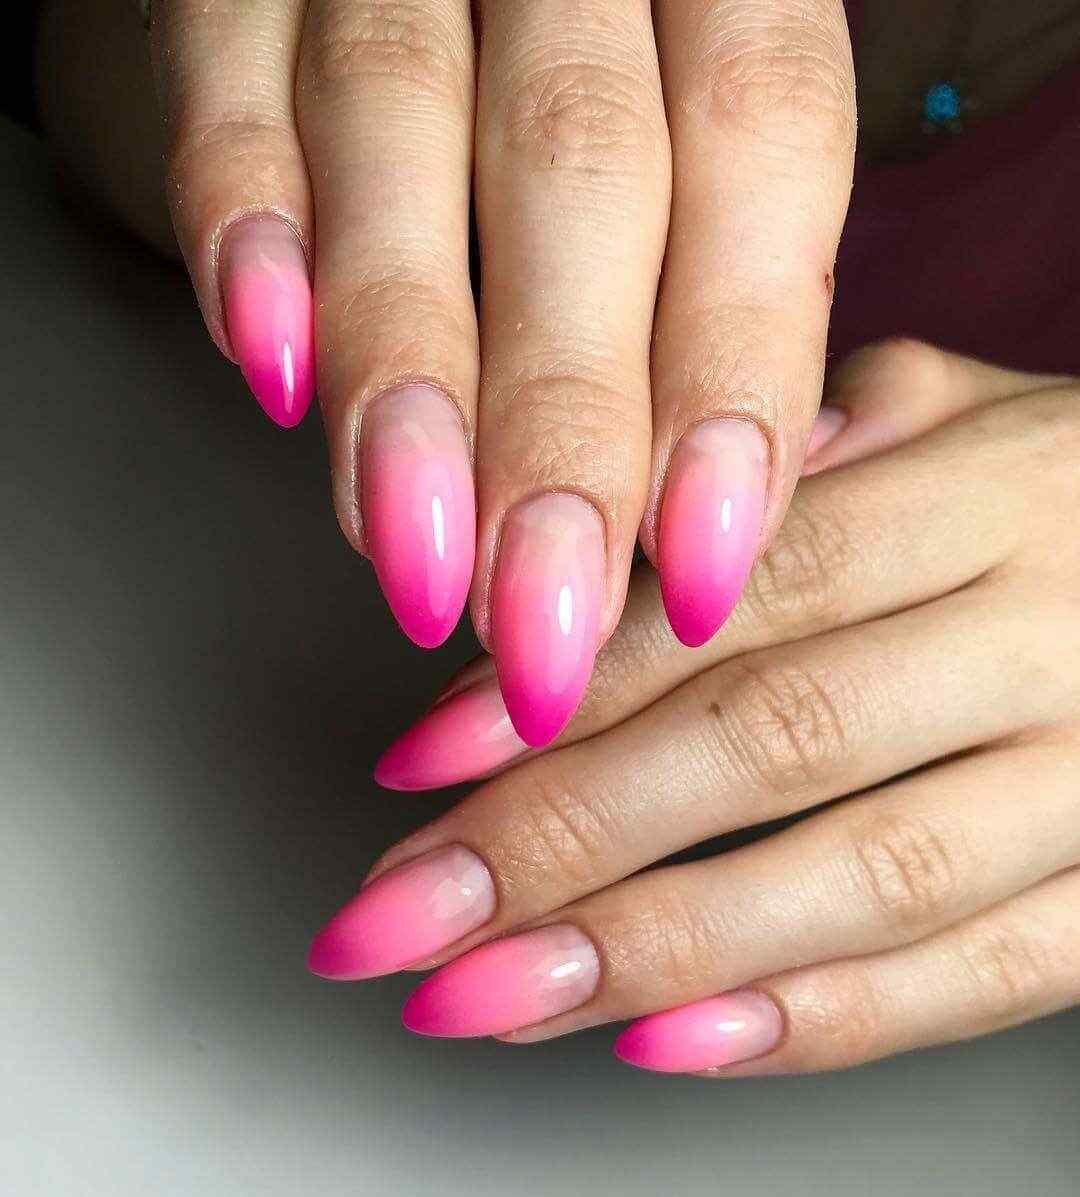 uñas color rosa degradadas